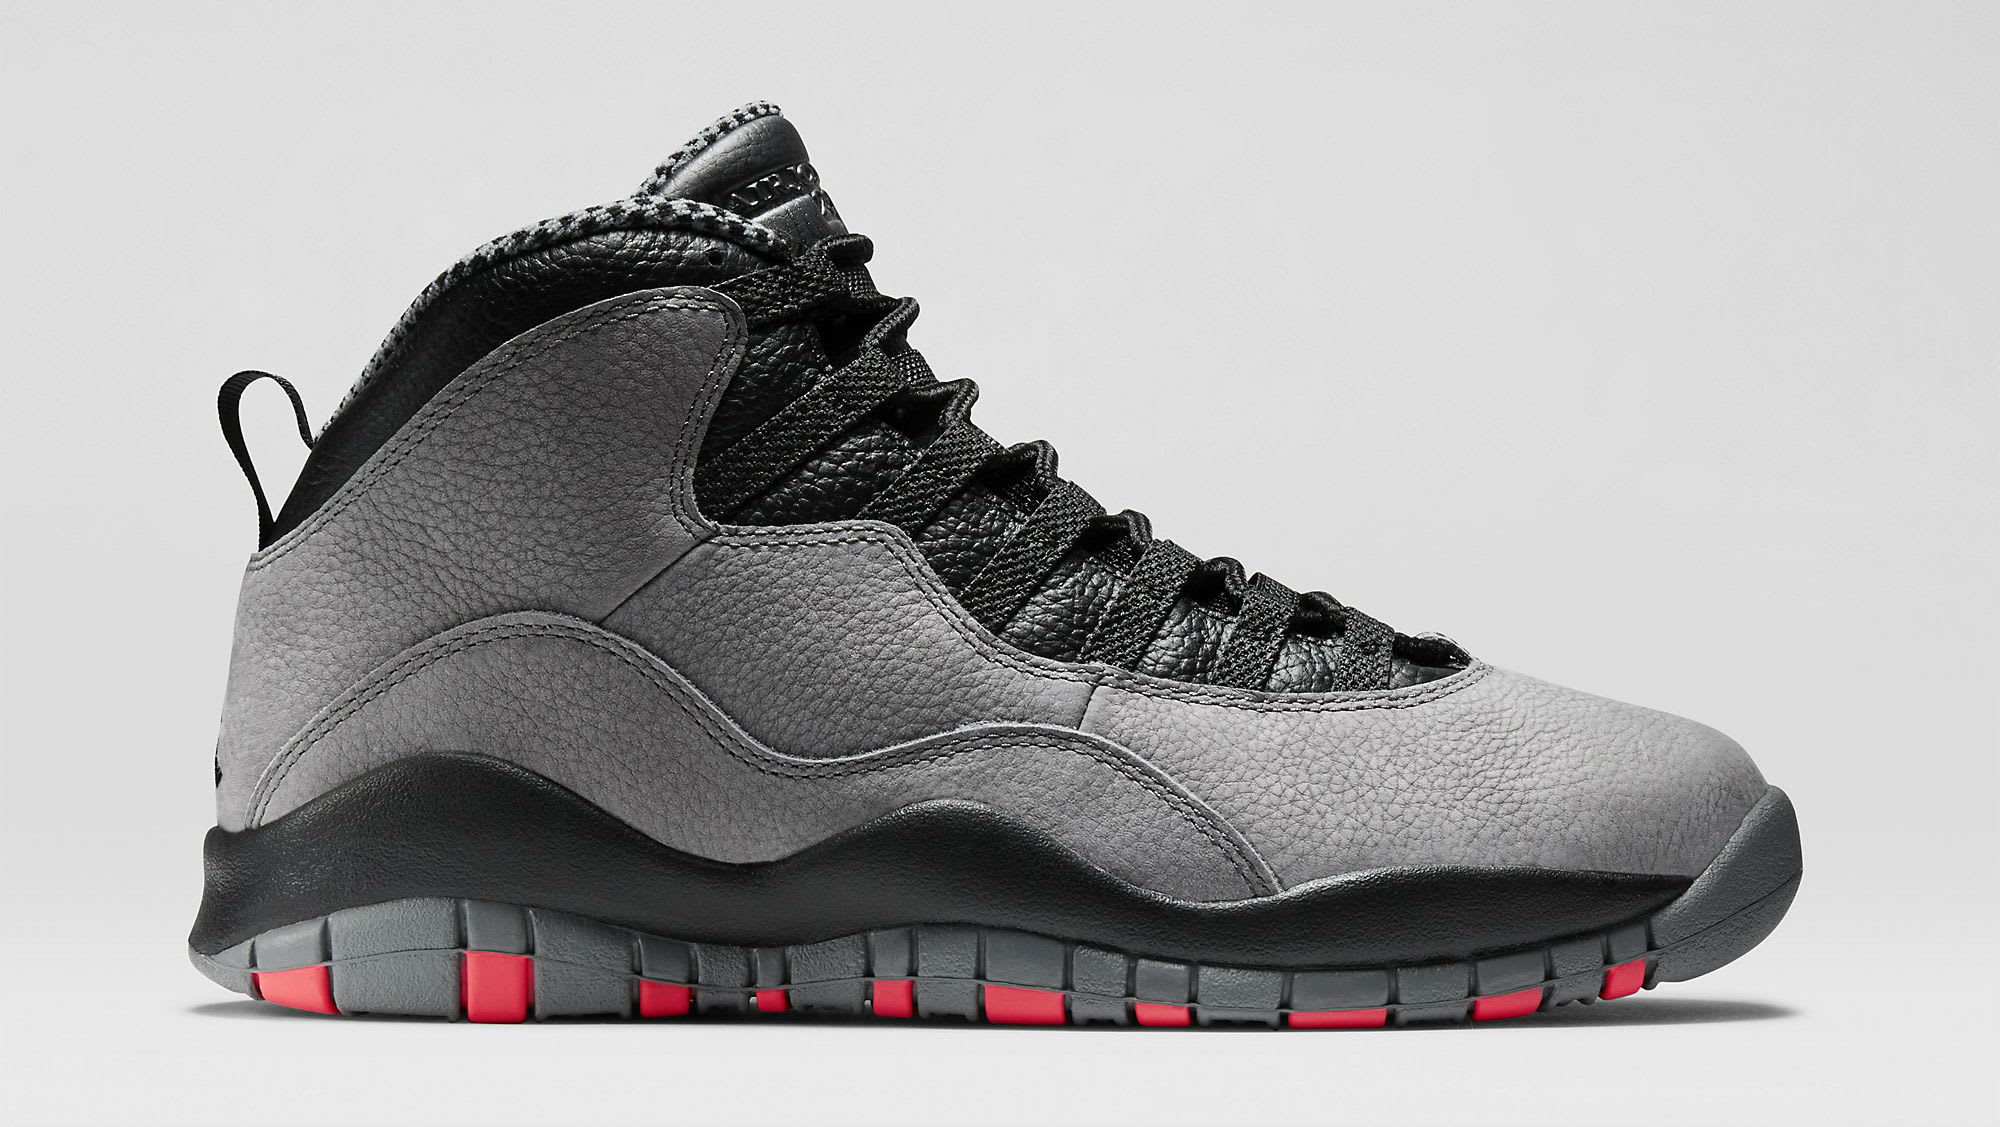 Air Jordan 10 X Cool Grey Infrared Release Date 310805-023